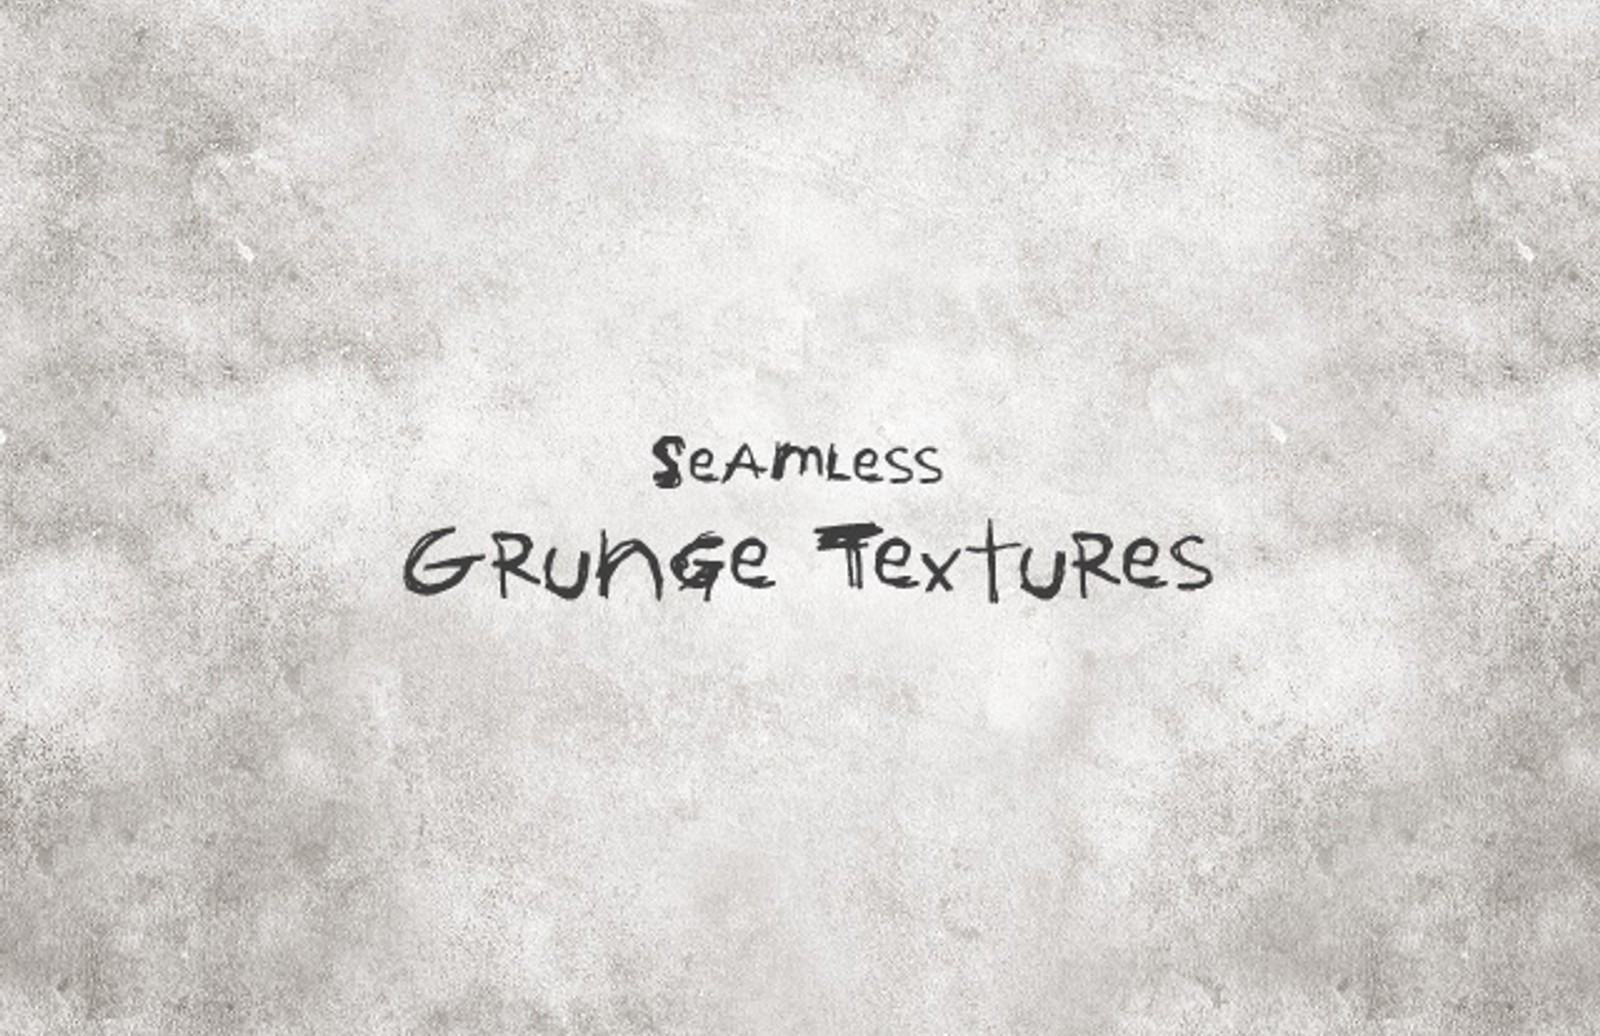 Seamless  Grunge  Textures  Preview1